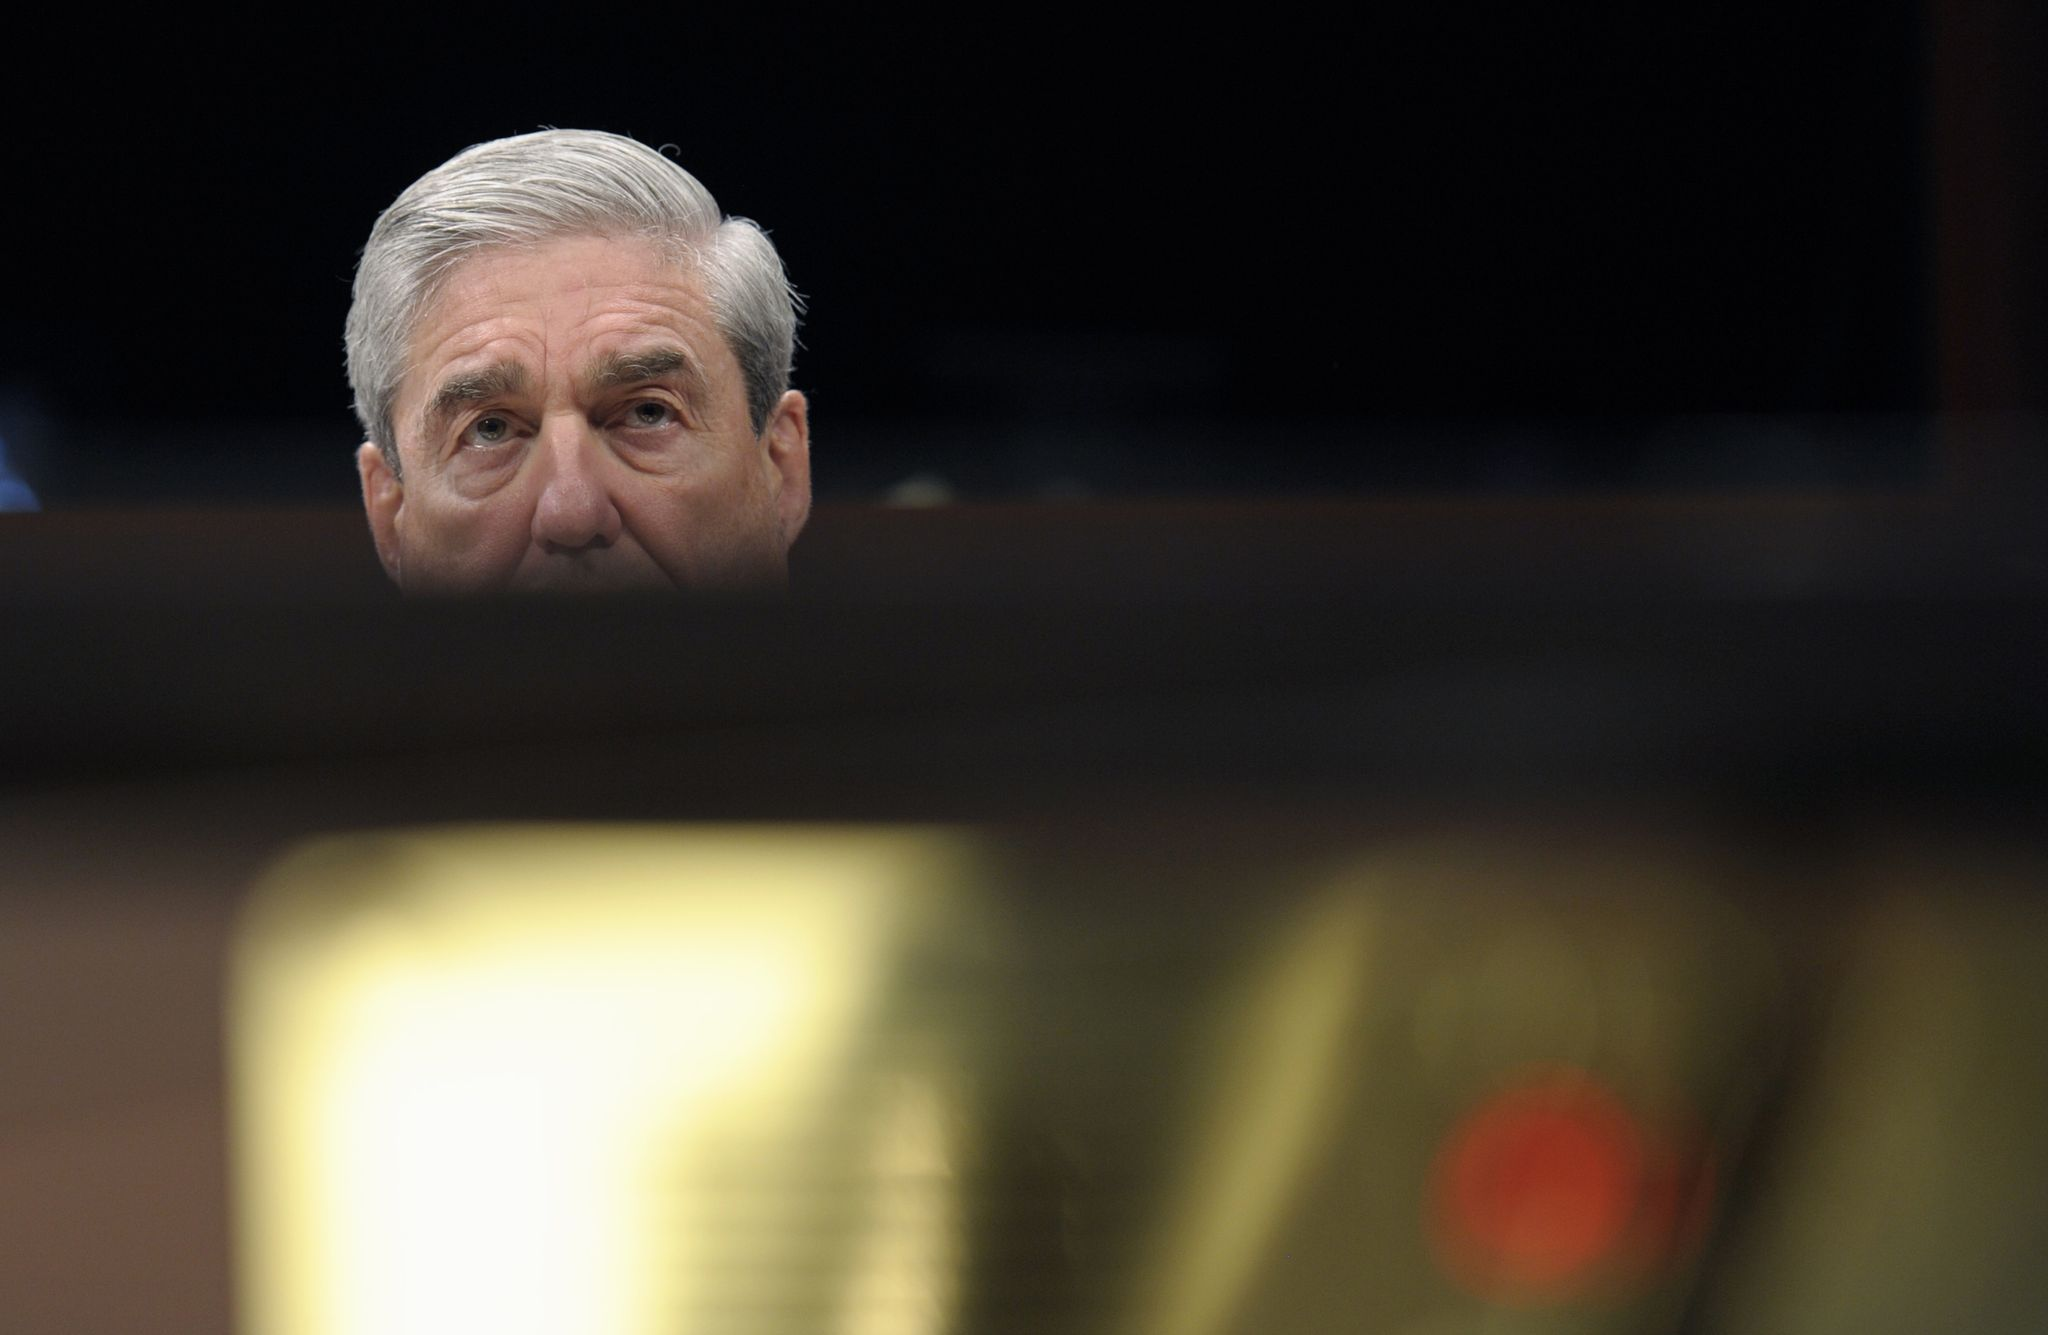 Robert Mueller skewing facts to fit 'predetermined theory,' Jerome Corsi says